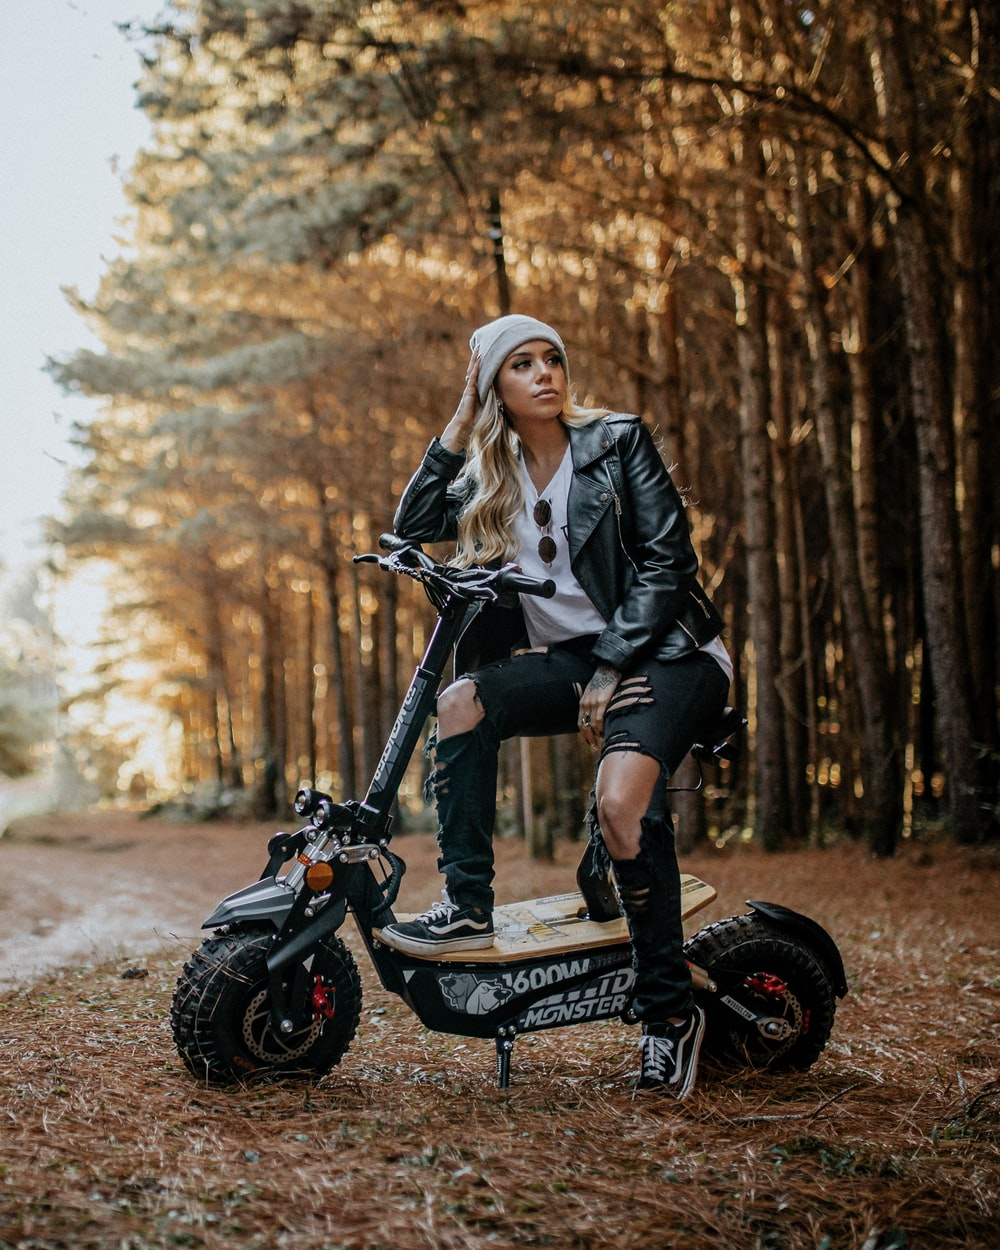 woman in black jacket riding on black motorcycle